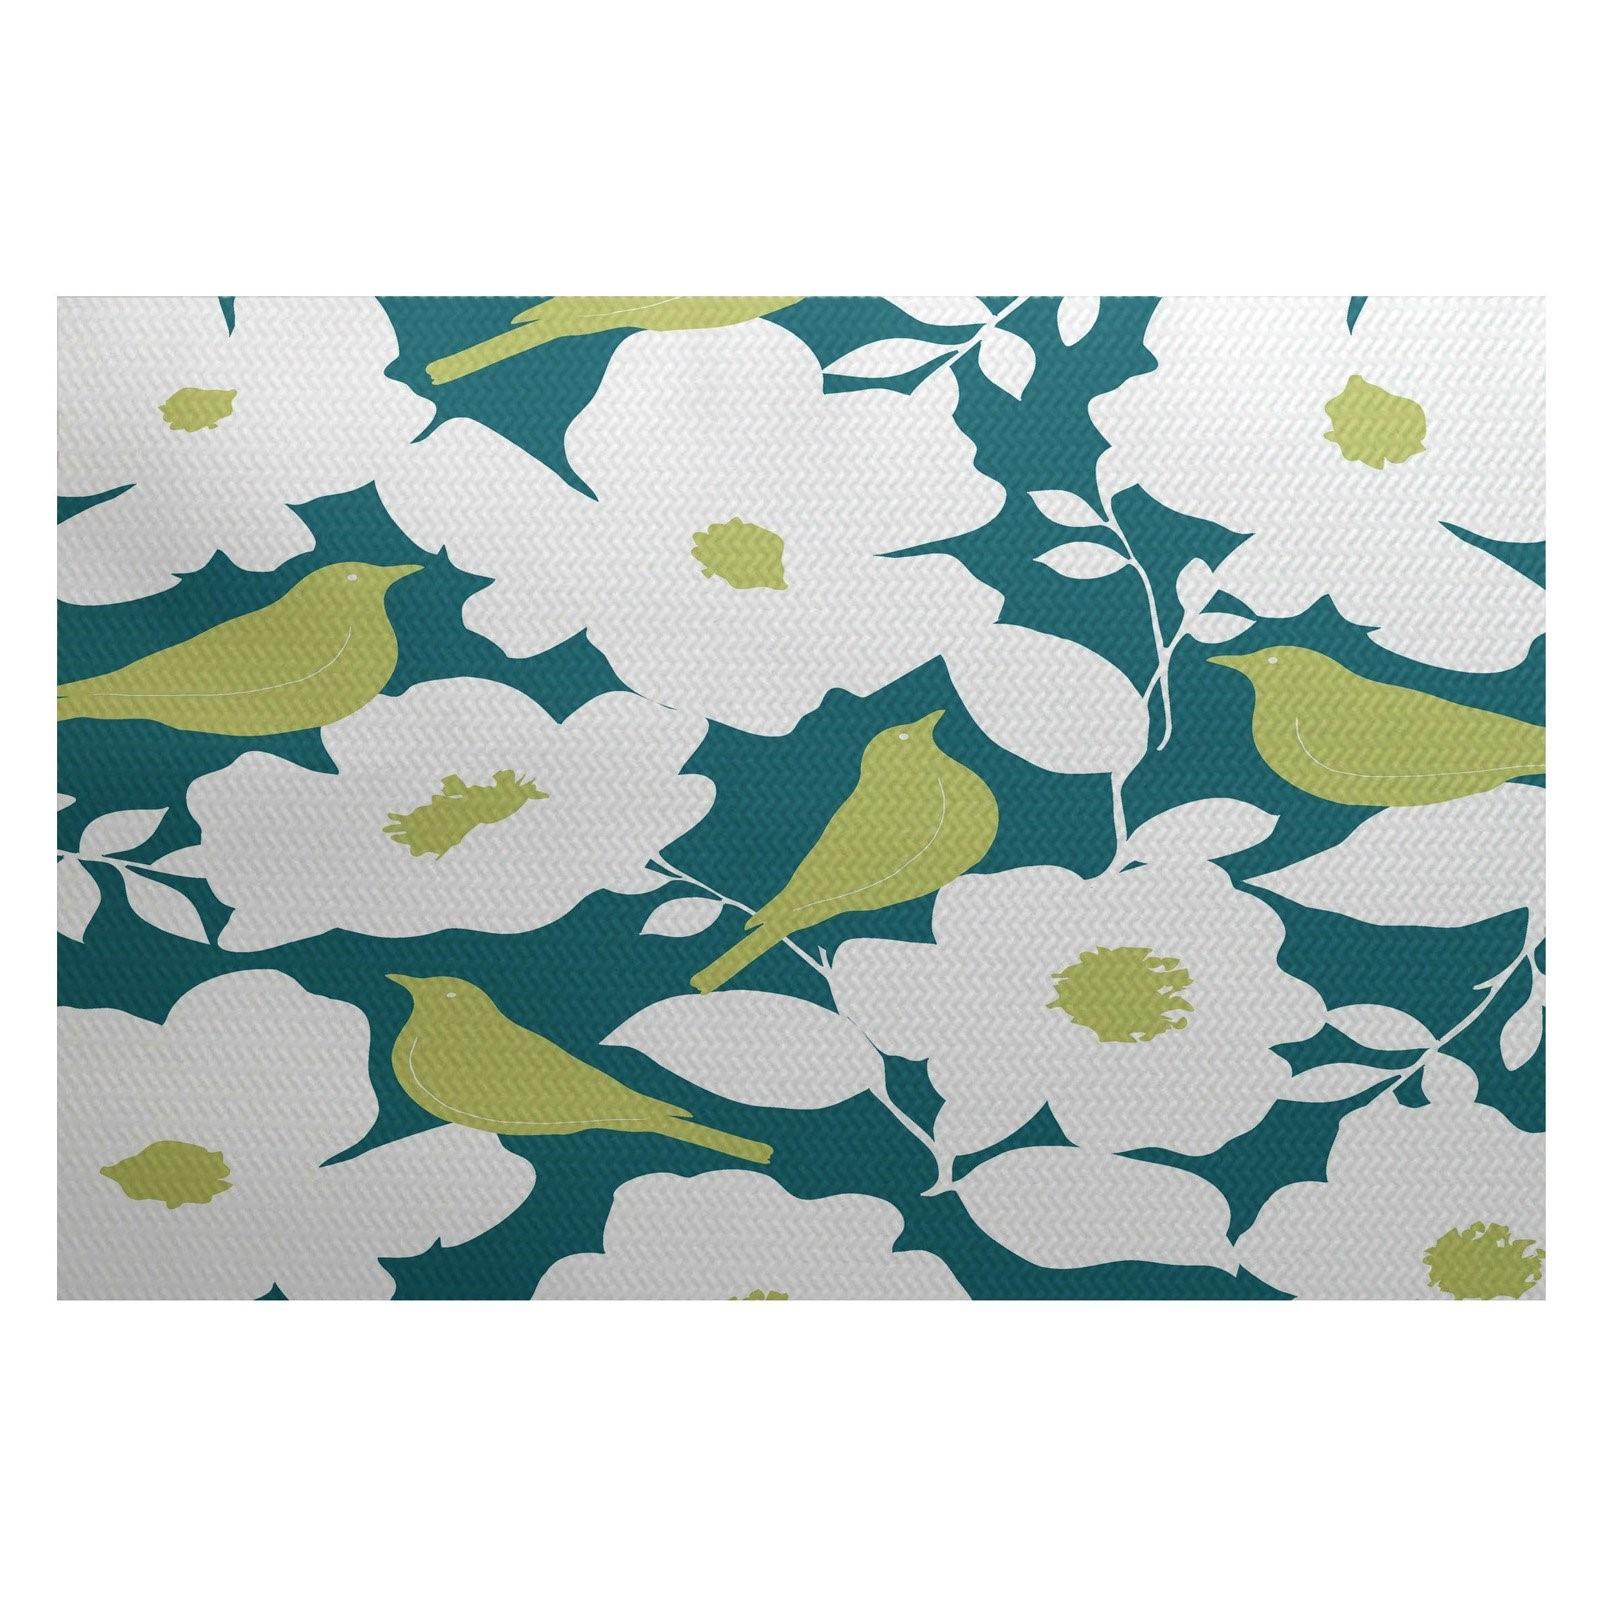 Simply Daisy 3' x 5' Modfloral Floral Print Indoor Rug